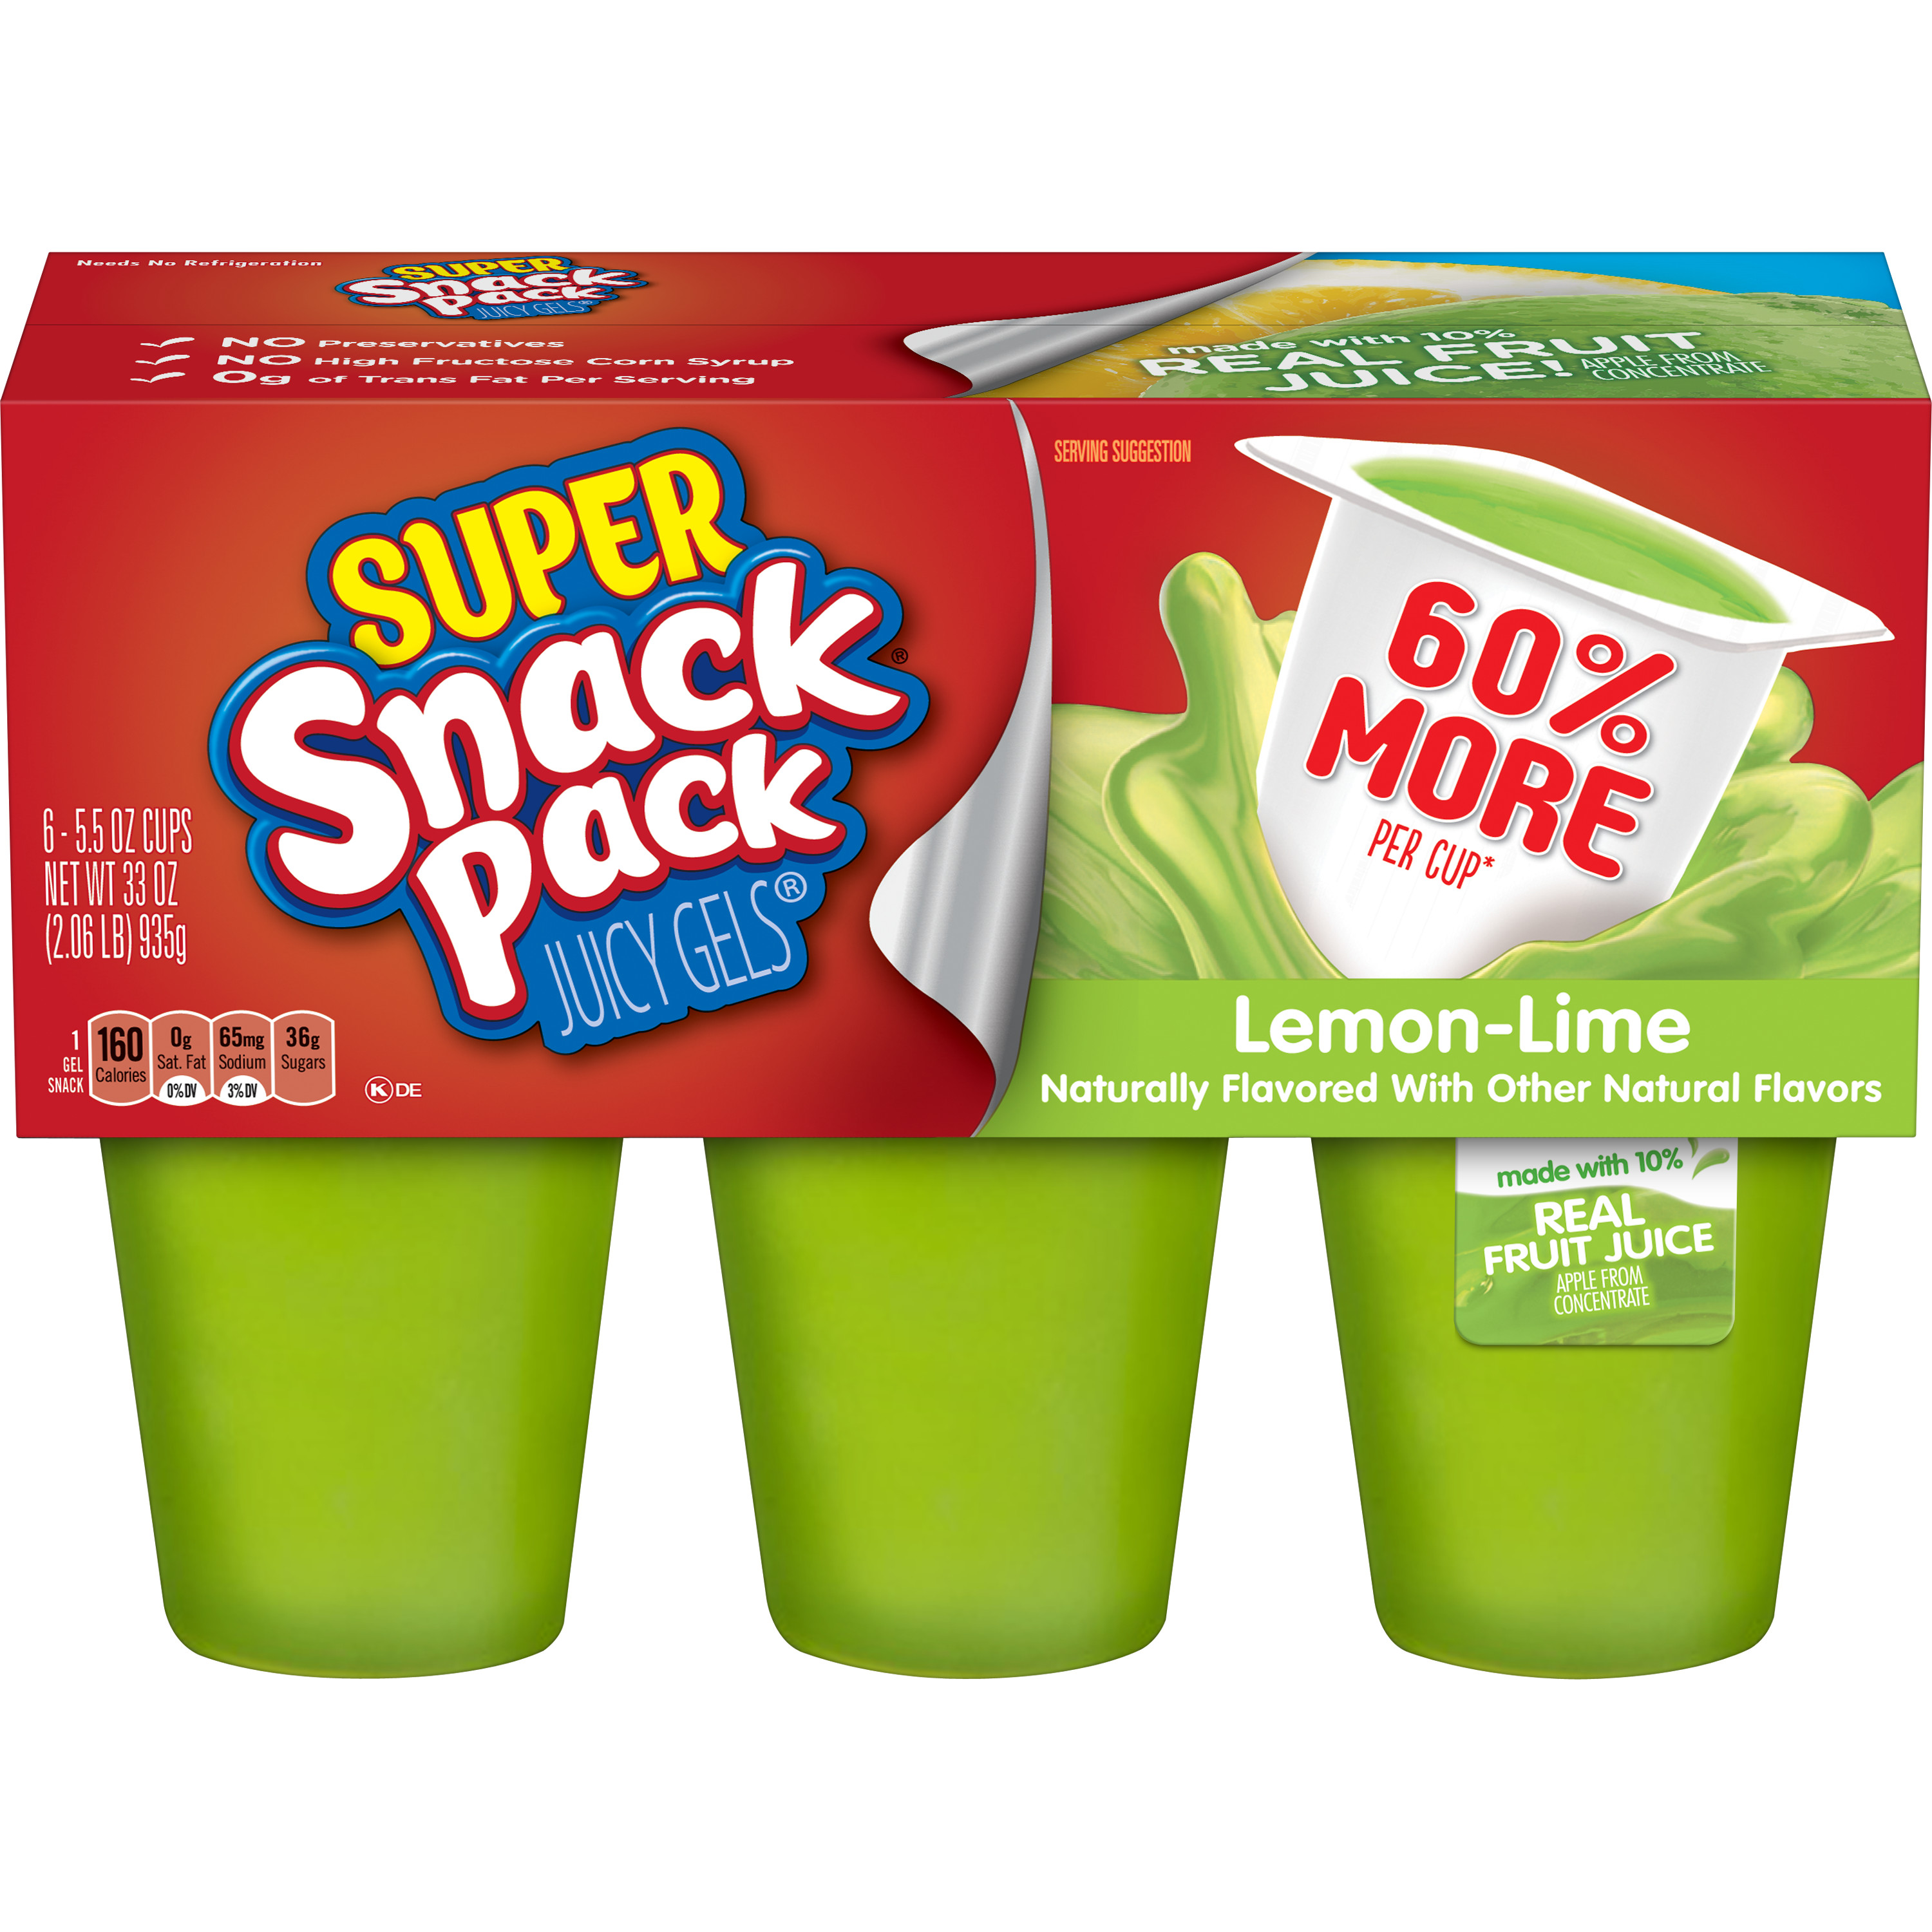 Super Snack Pack Lemon-Lime Juicy Gels, 6 Count